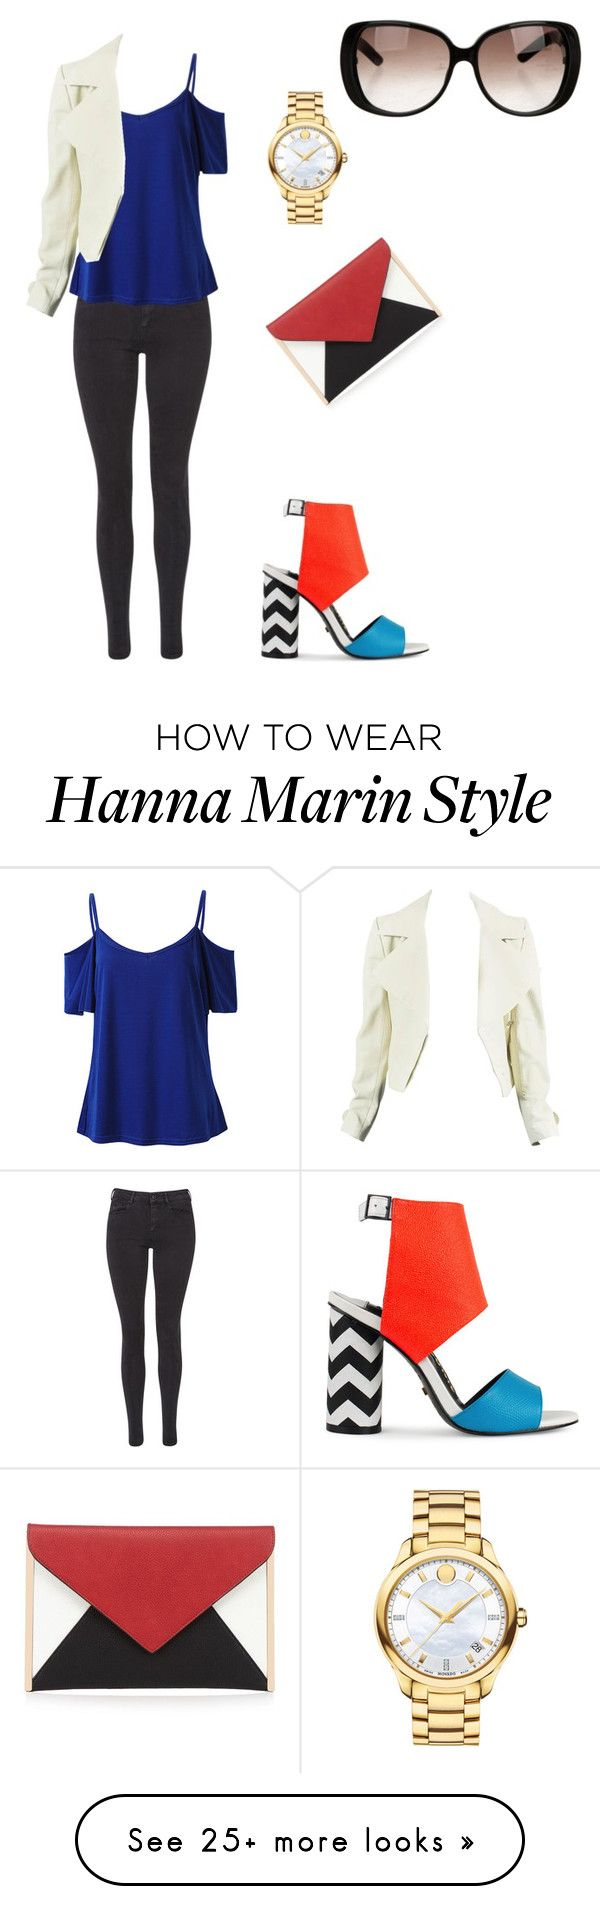 """I made Hanna Marin from the Pretty Little Liarss  #HannaMarin #PLL #İdolOutfitsFromMina"" by minatosun on Polyvore featuring Maison Scotch, Red Herring, Kat Maconie, Movado and Gucci"